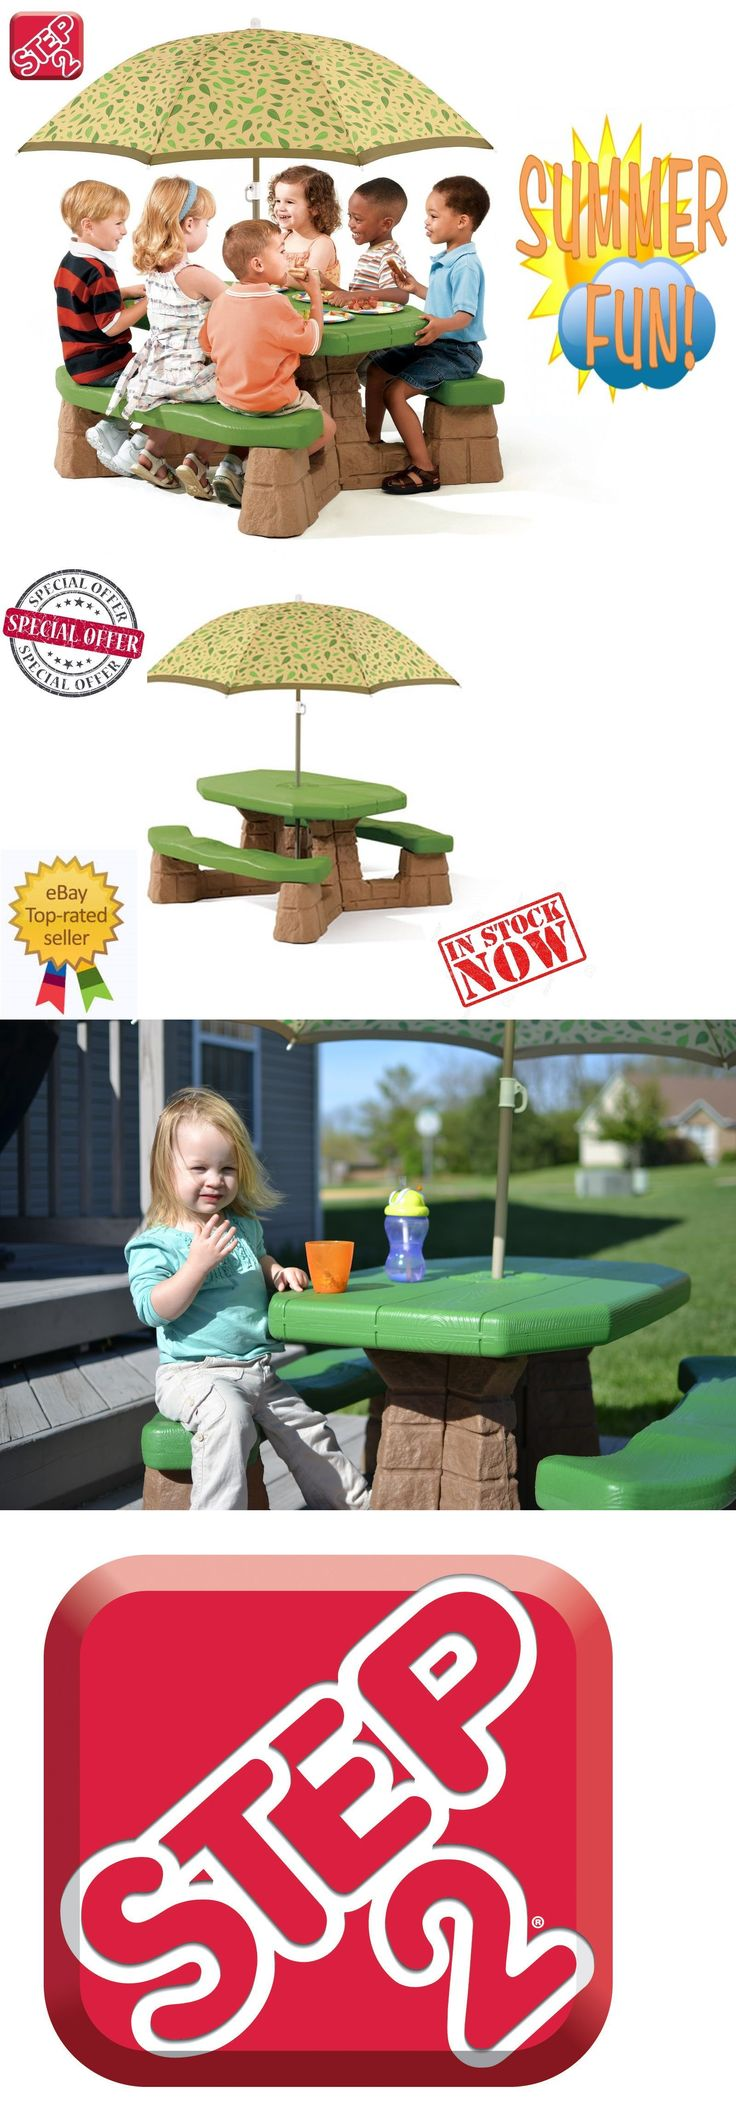 Step 2 52344: Step2 Naturally Playful Picnic Table With Umbrella For Kids Lawn Summer Shade -> BUY IT NOW ONLY: $99.99 on eBay!